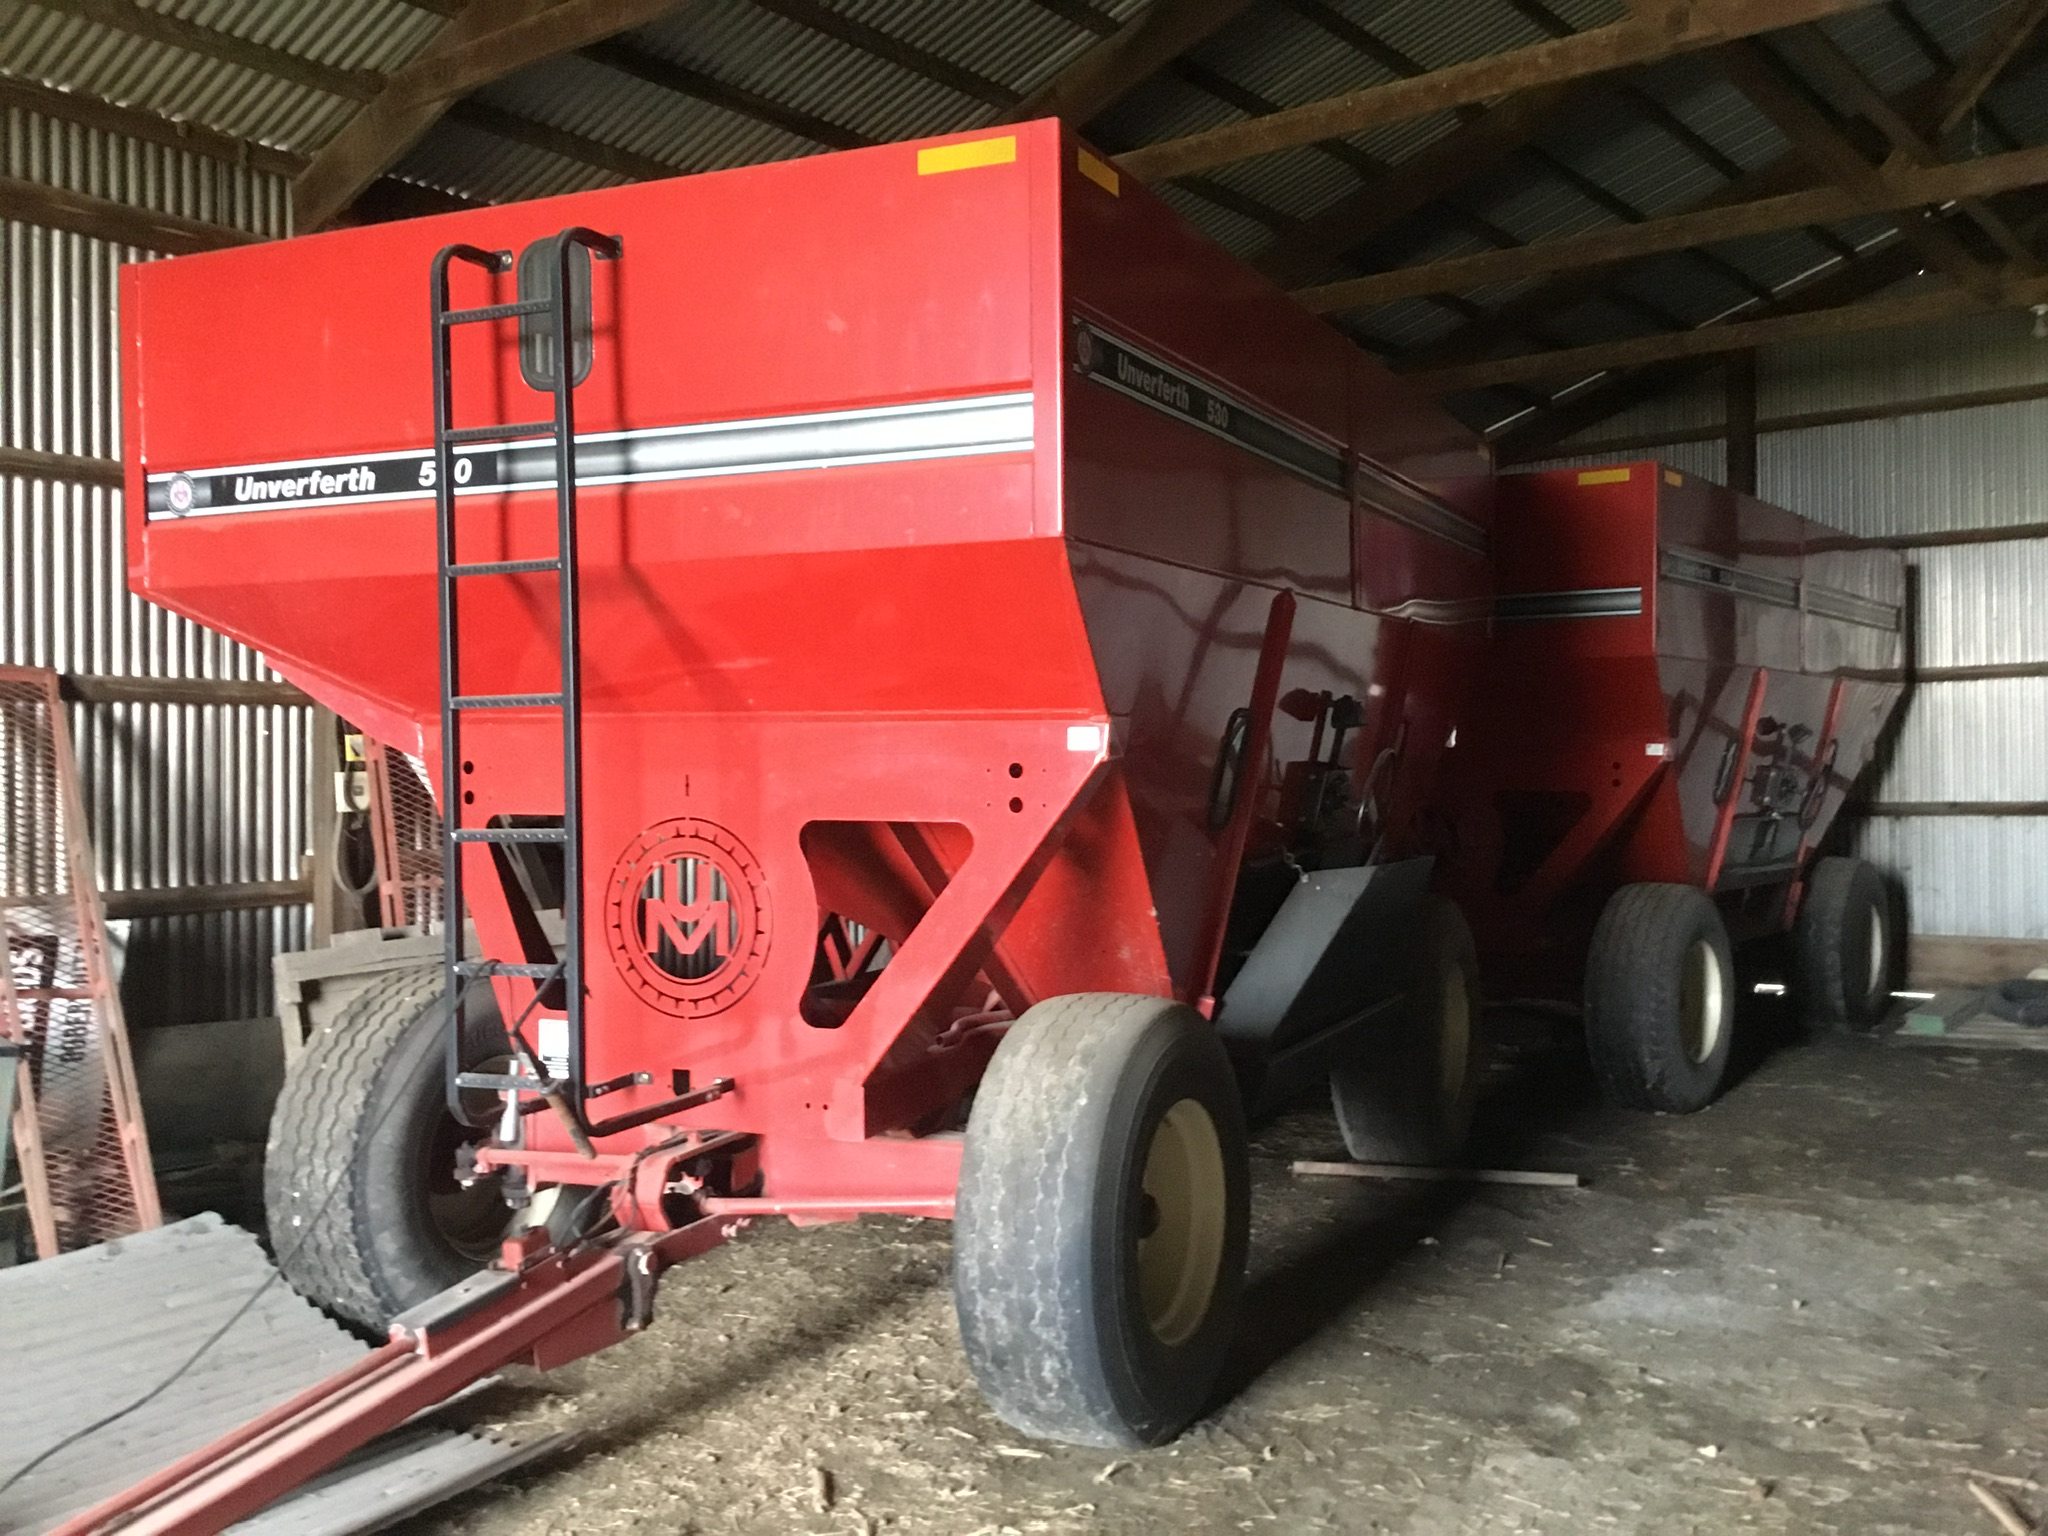 Unverferth 530 Side Dump Wagon, Brakes, 425-65R-22.5 Tires, Serial #B206-50-116, Red, Sharp - Image 3 of 4